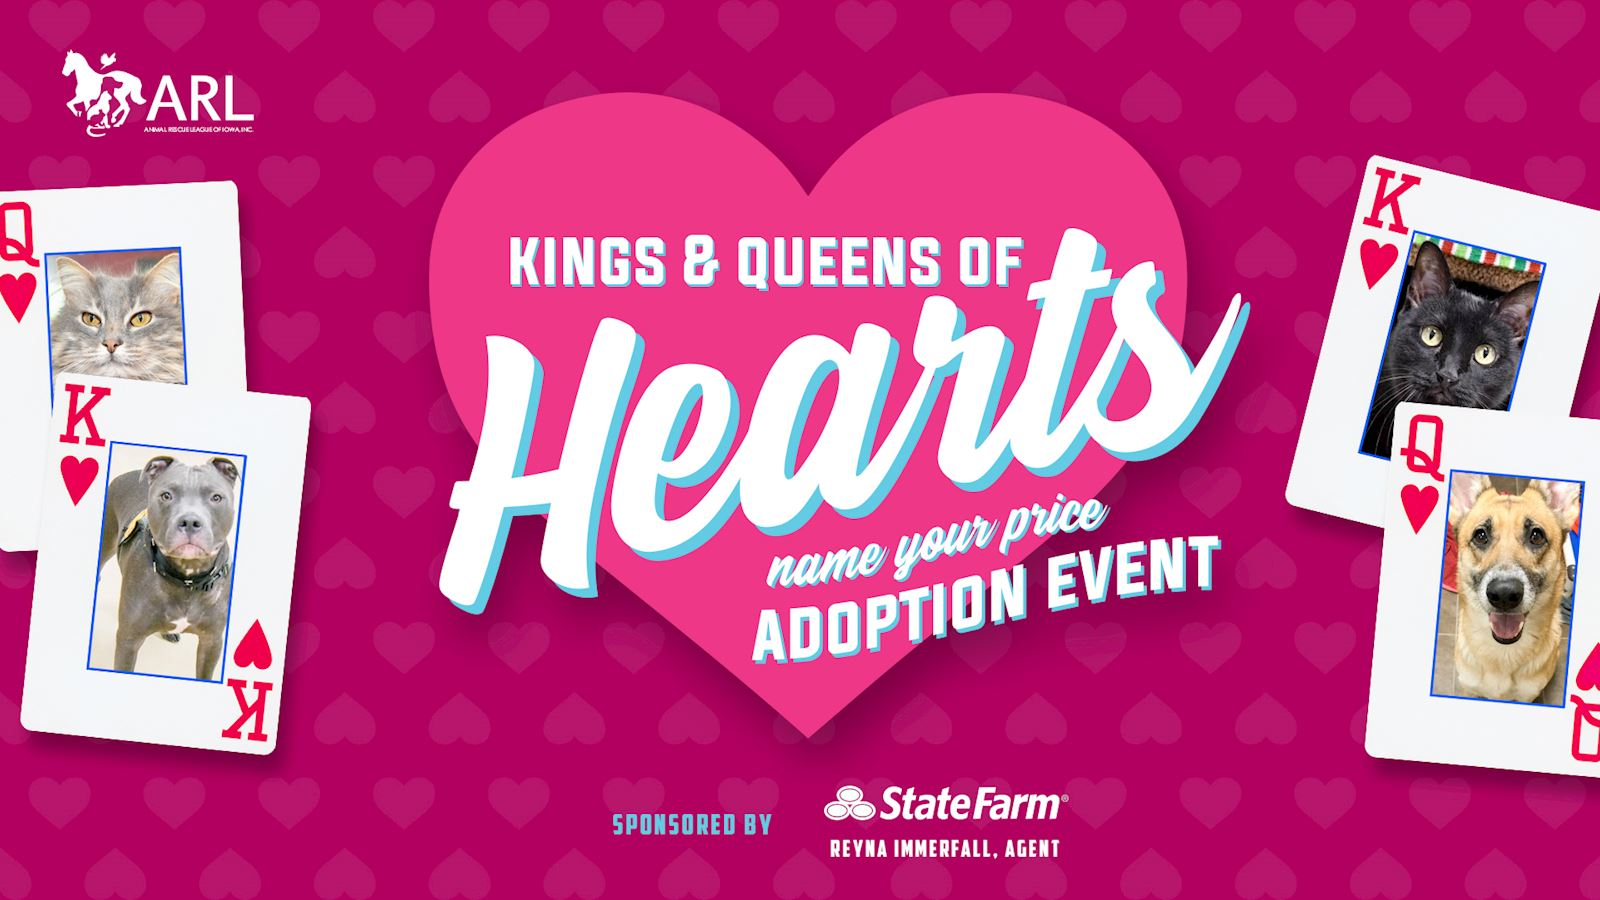 Kings & Queens of Hearts  Adoption Event